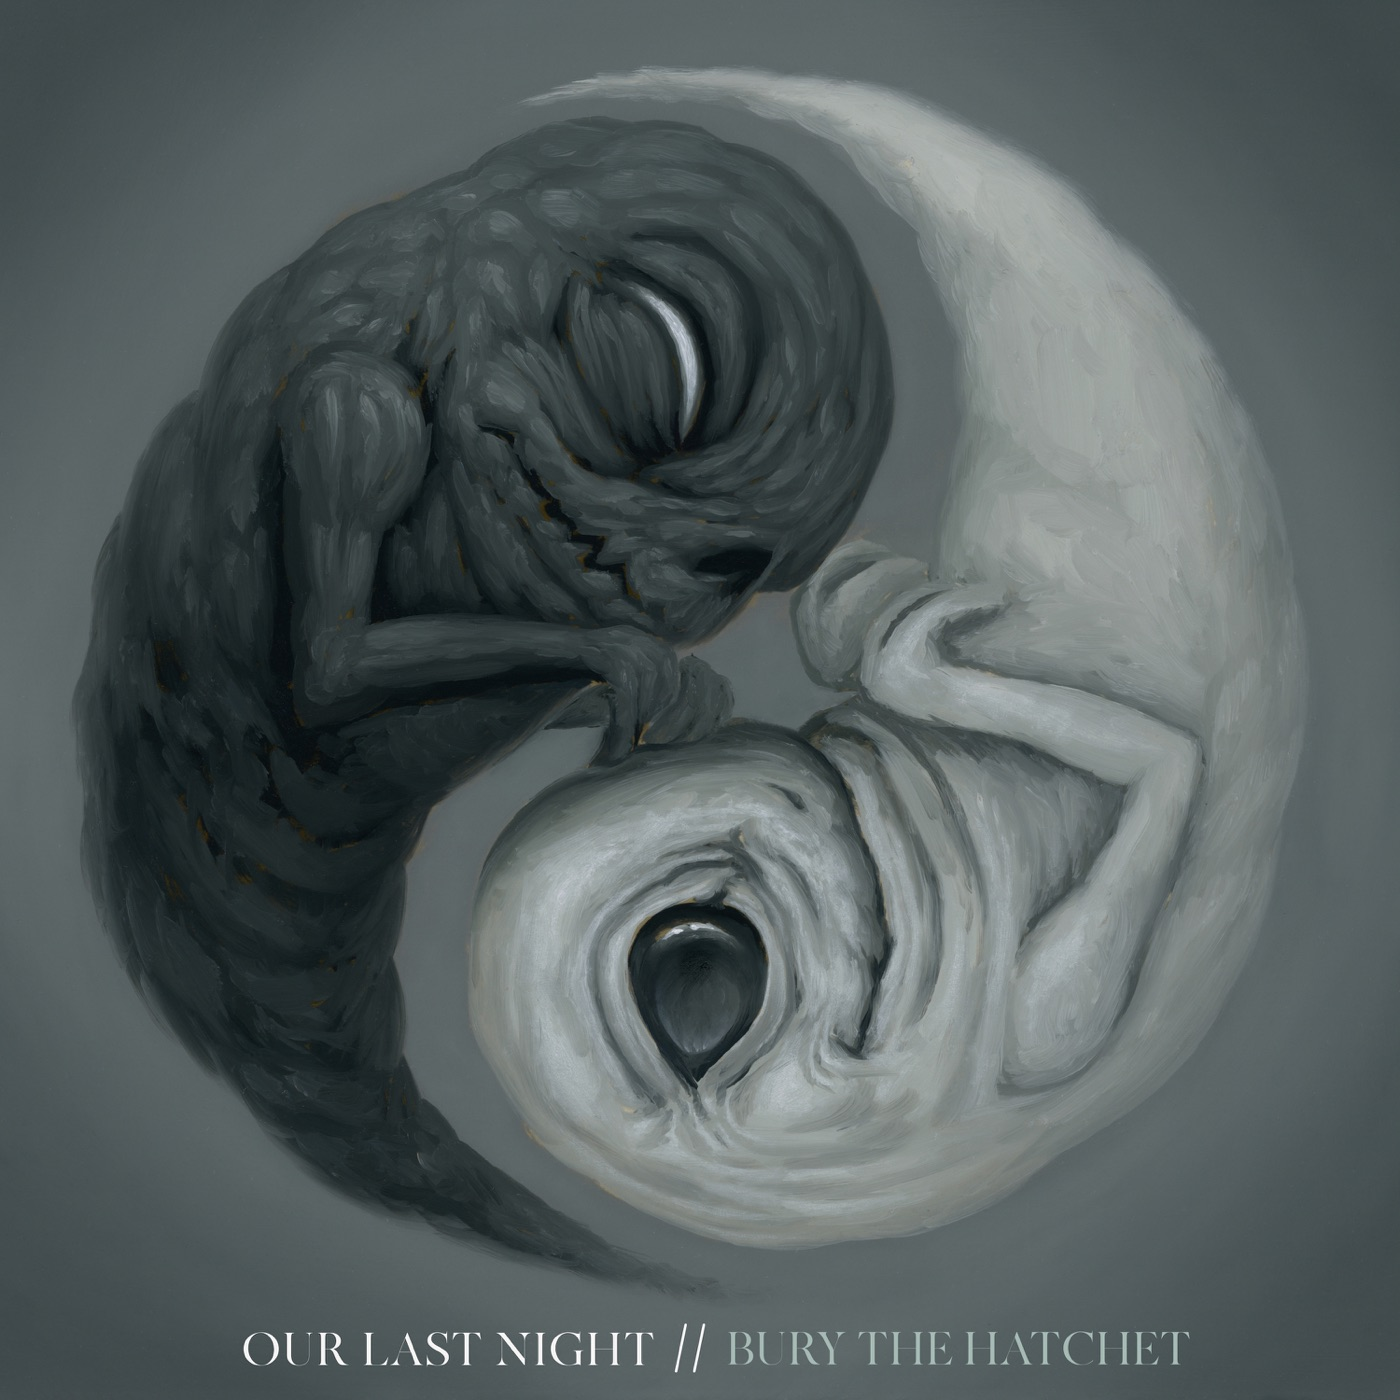 Our Last Night - Bury the Hatchet [Single] (2019)